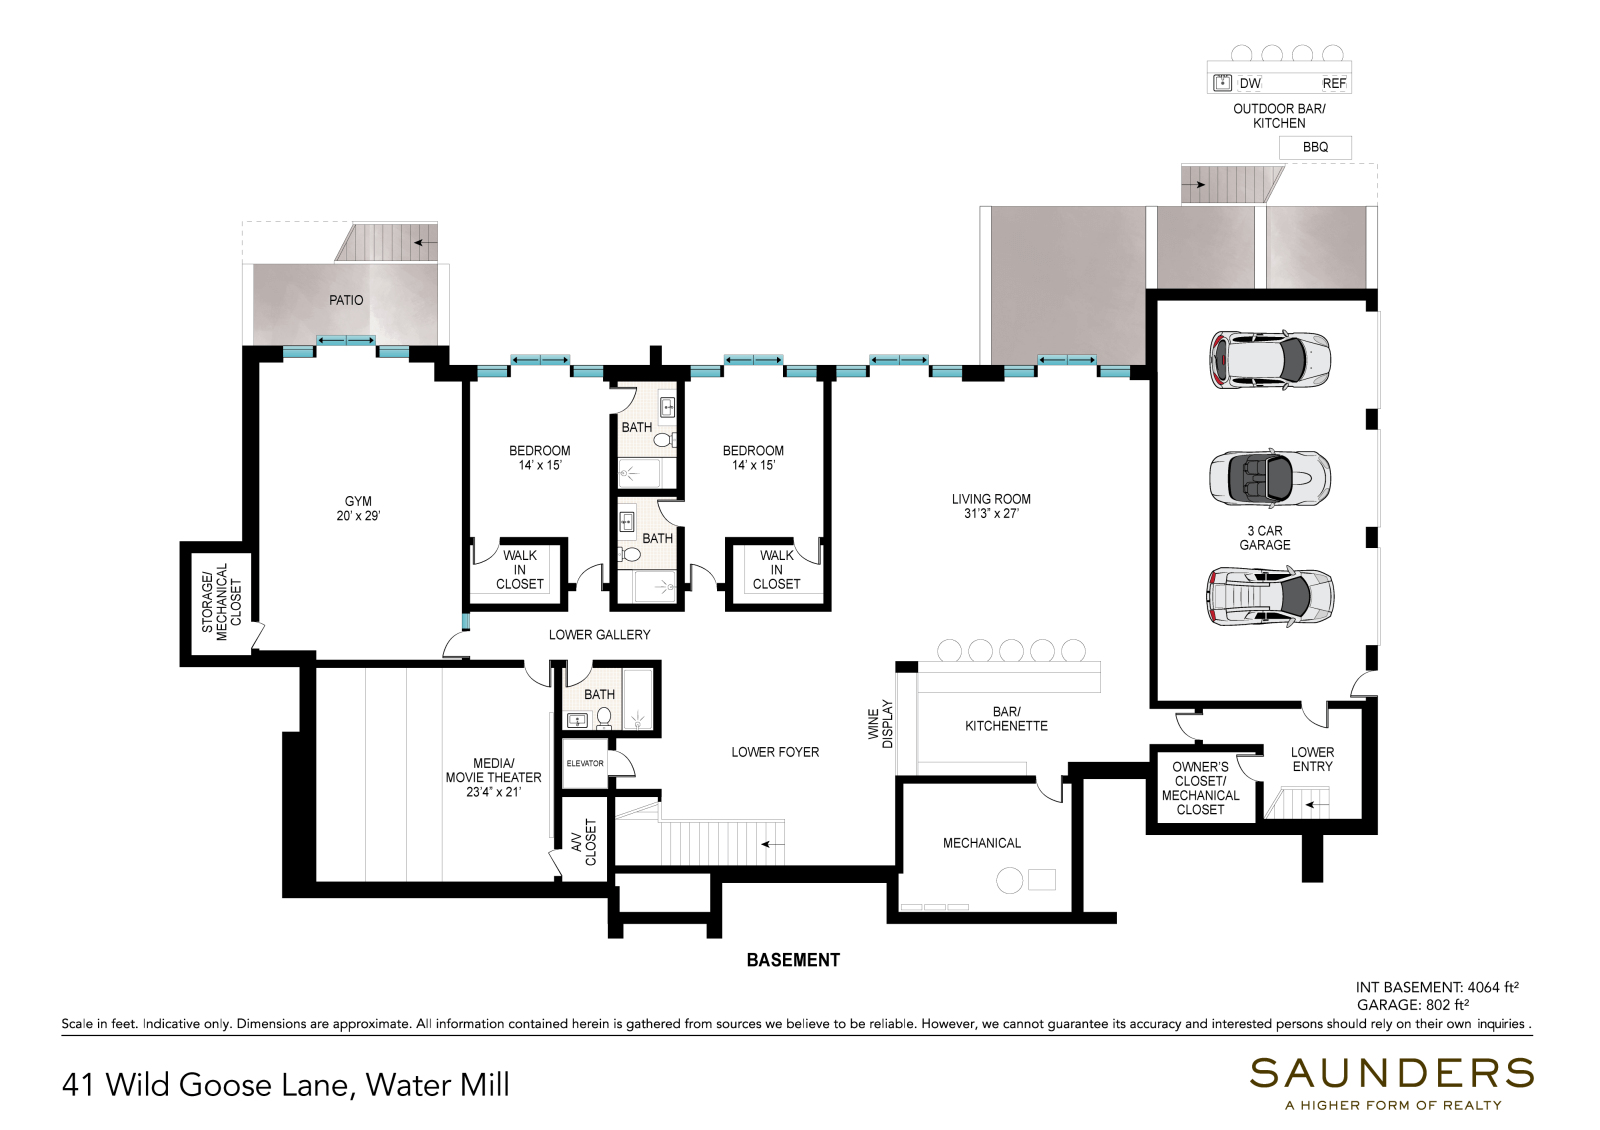 41 Wild Goose Lane Basement (floor plan)